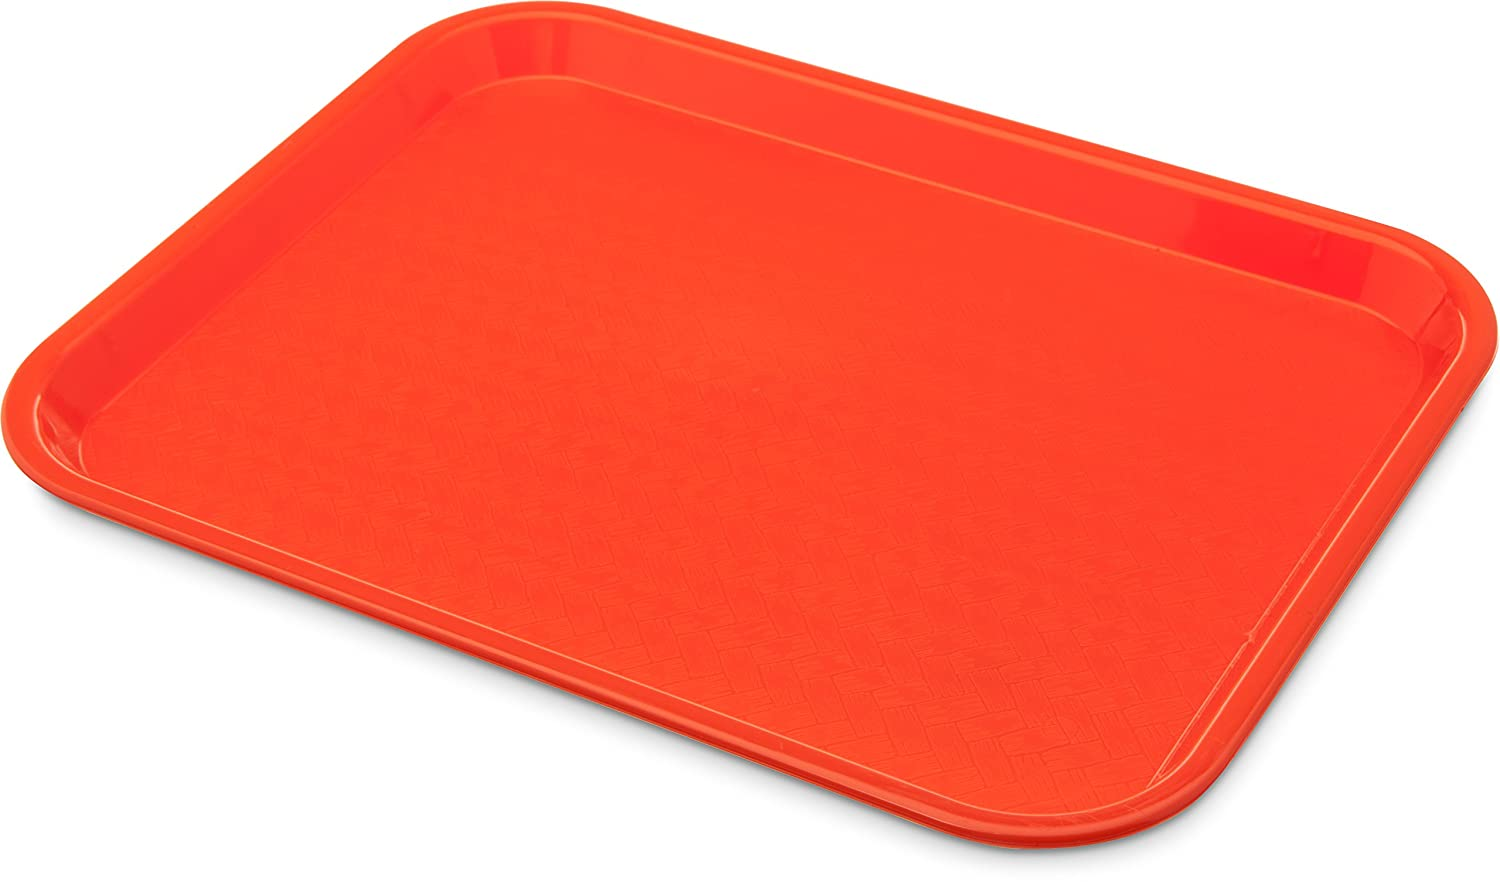 Carlisle CT101424 Café Standard Cafeteria / Fast Food Tray, 10